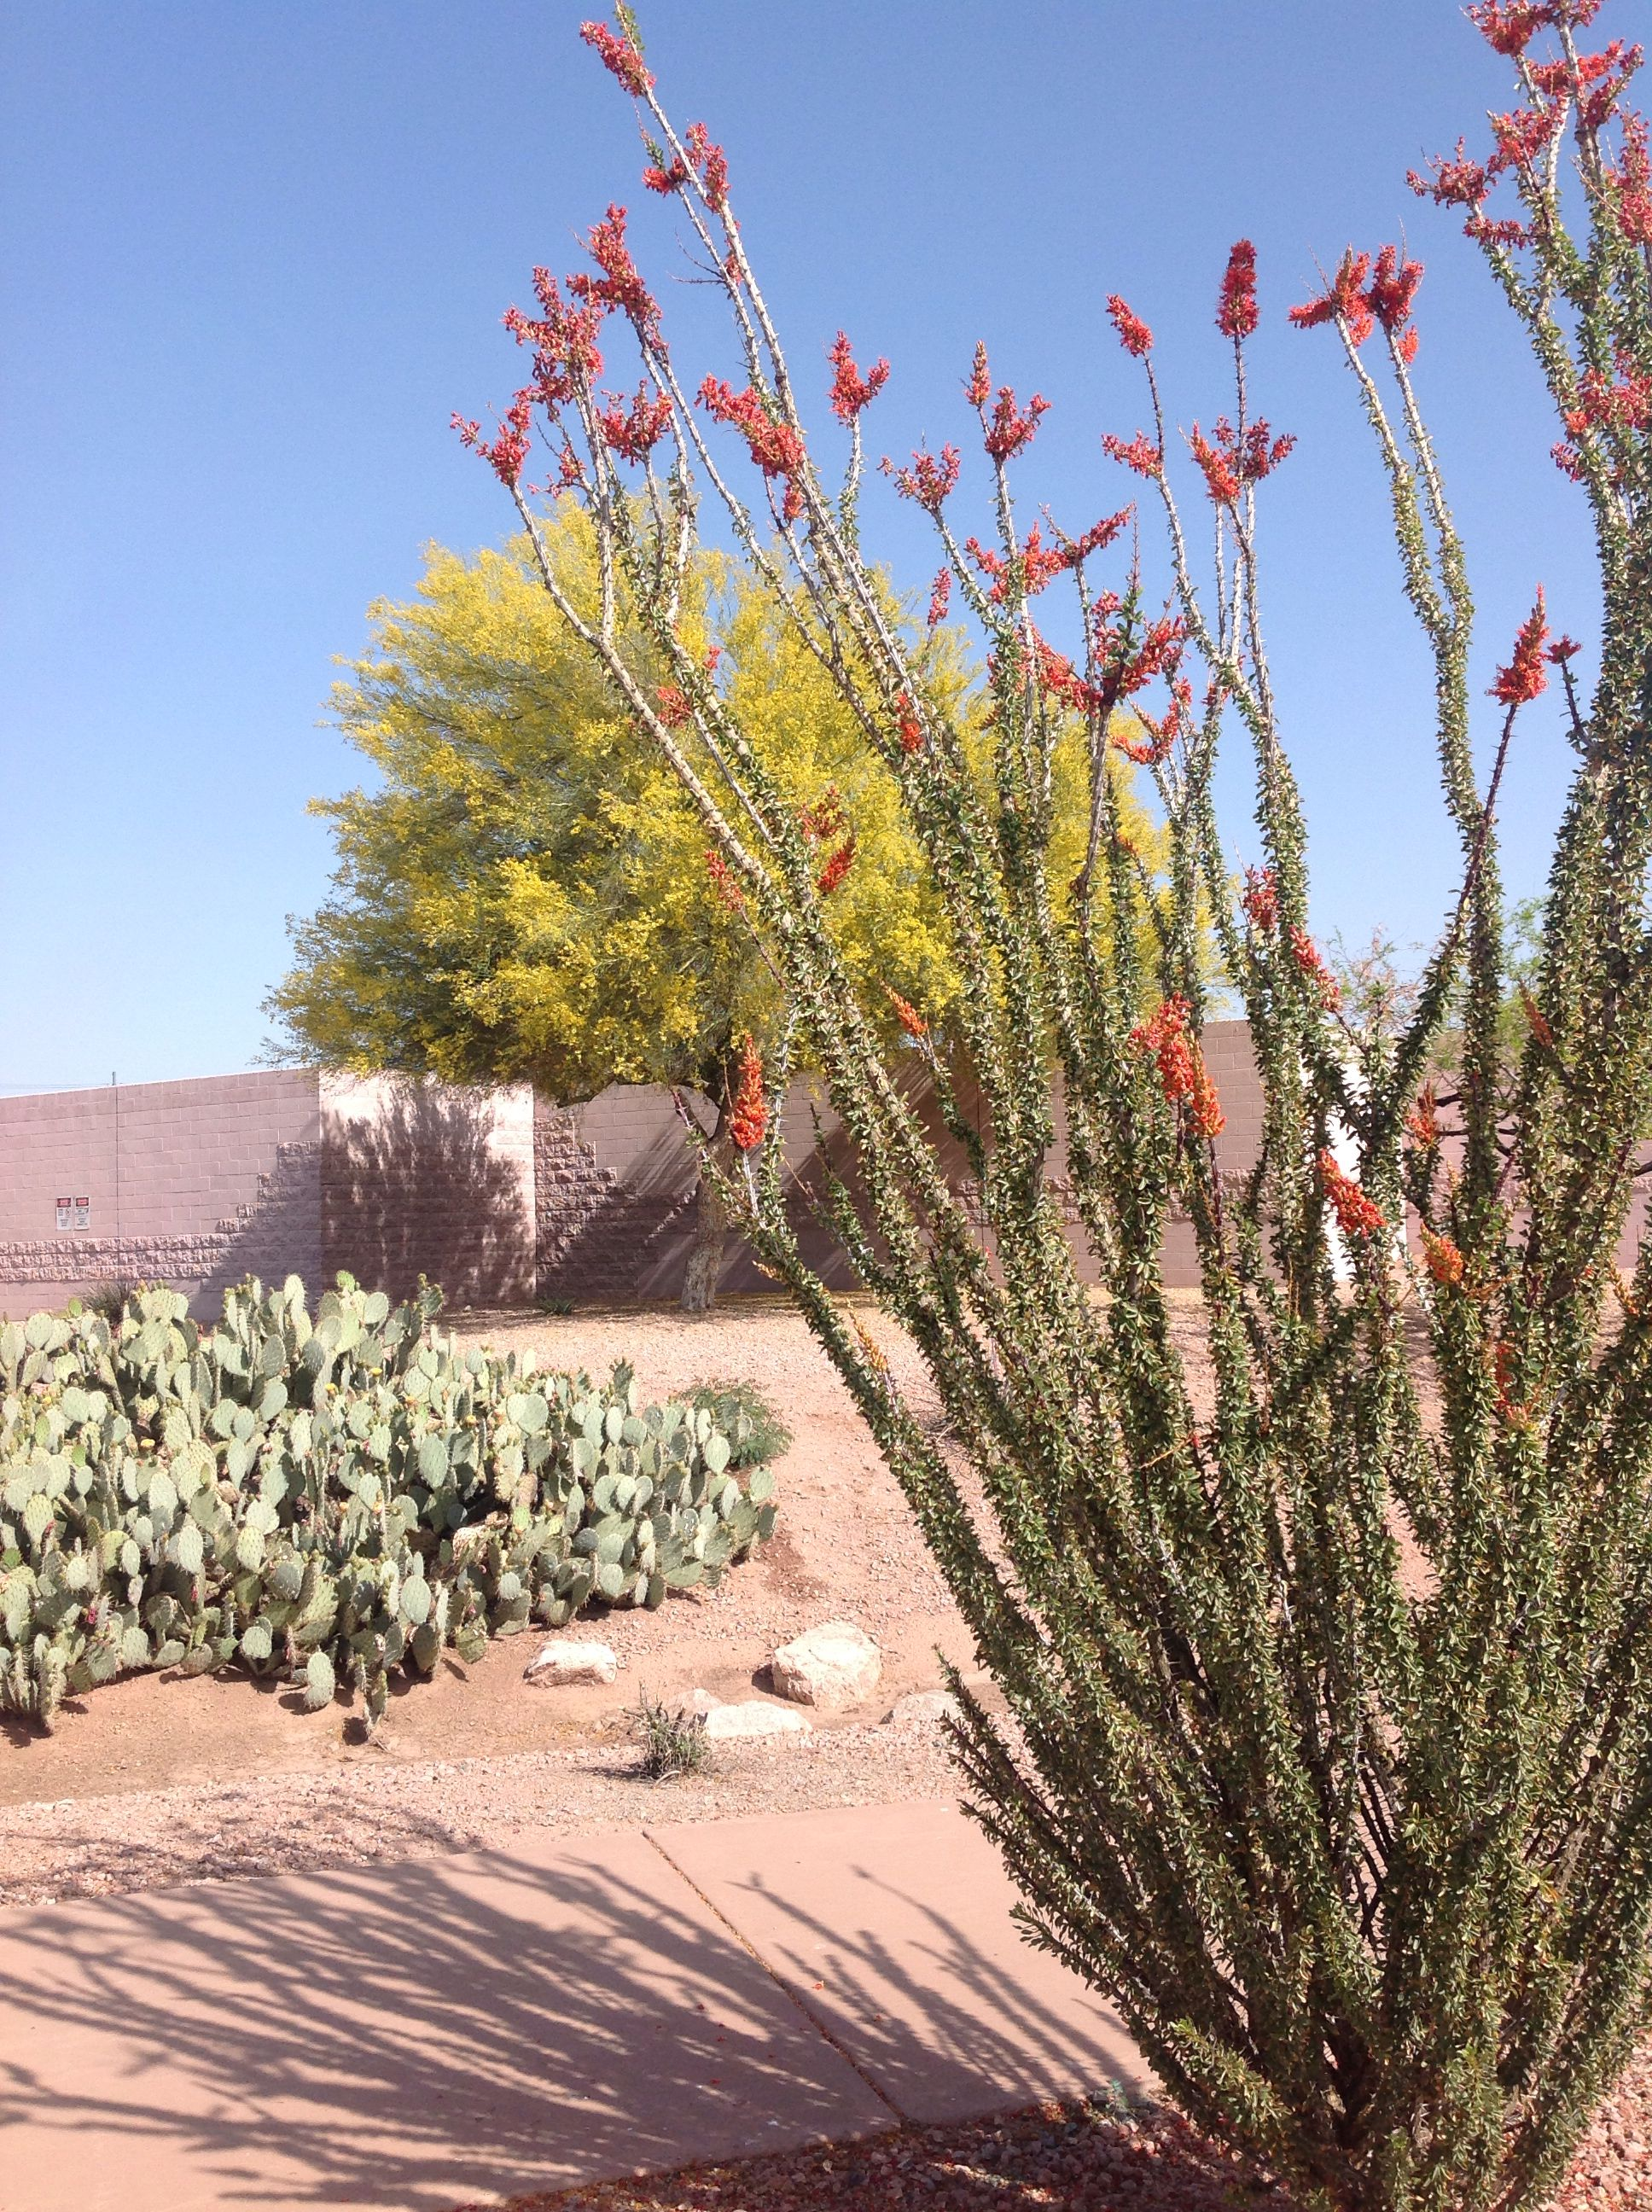 Blooming Ocotillo Cactus With A Blooming Palo Verde Tree Behind Springtime In Arizona Desert Landscaping Nature Artists Palo Verde